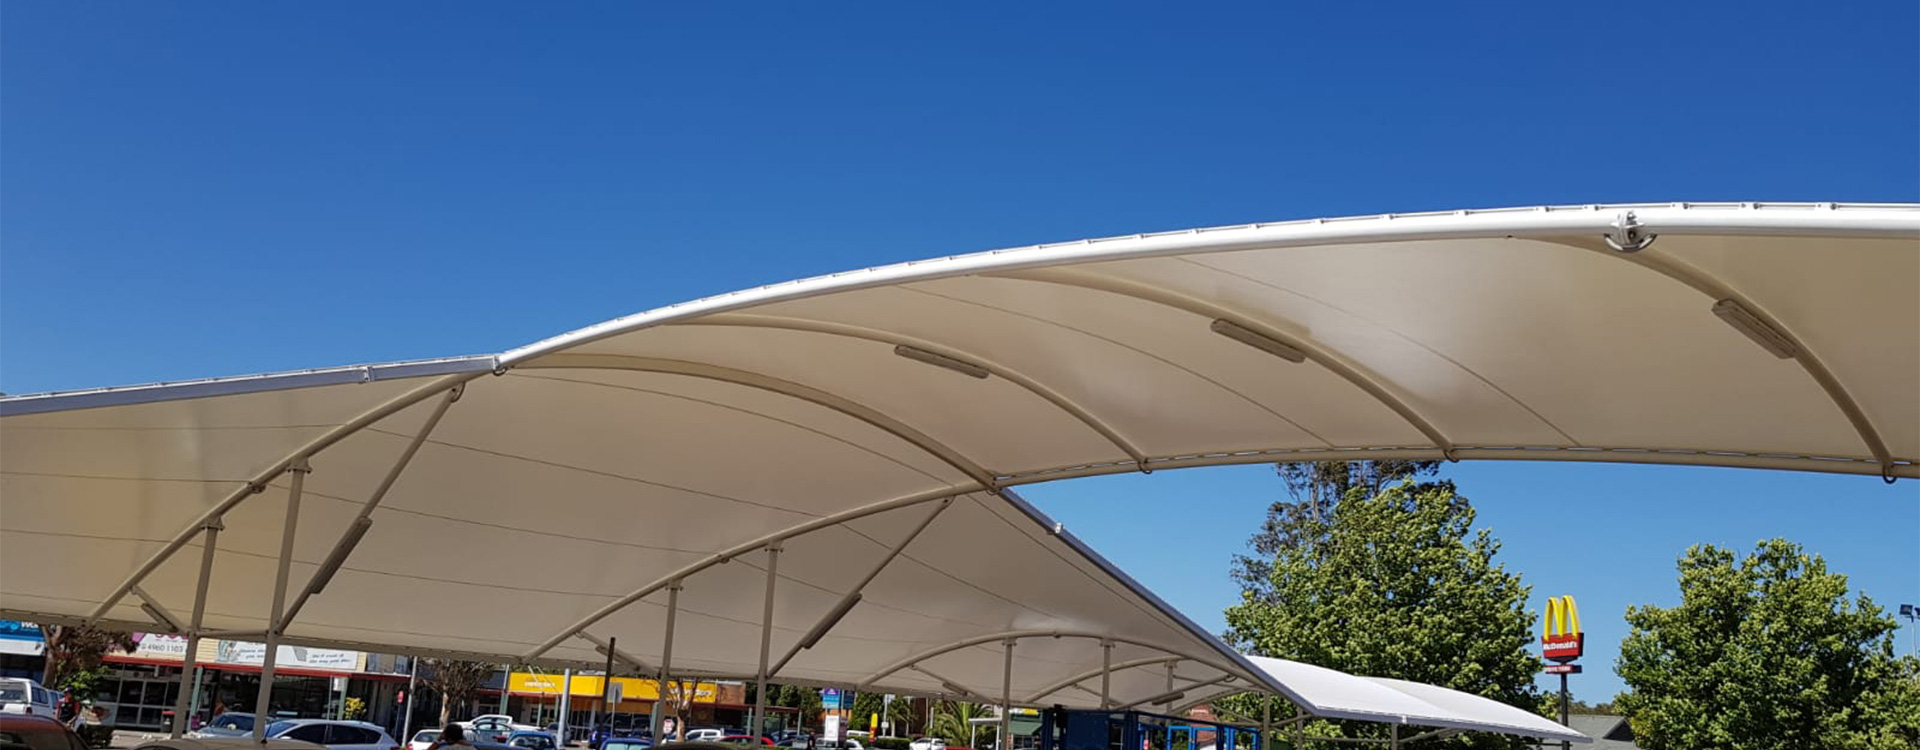 Woolworths Mayfield Carpark Shade